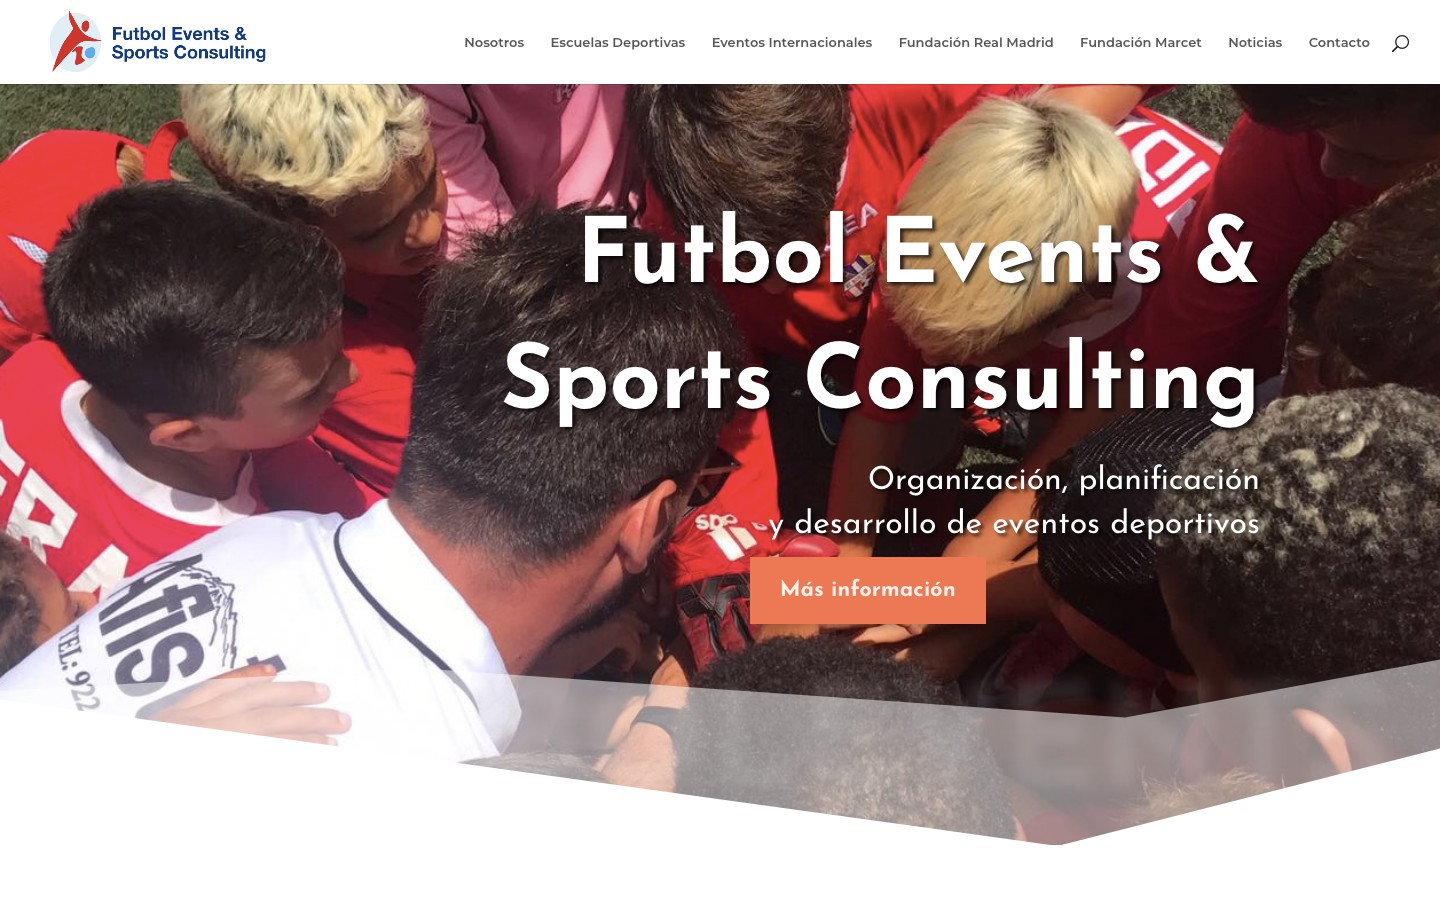 Futbol Events & Sports Consulting